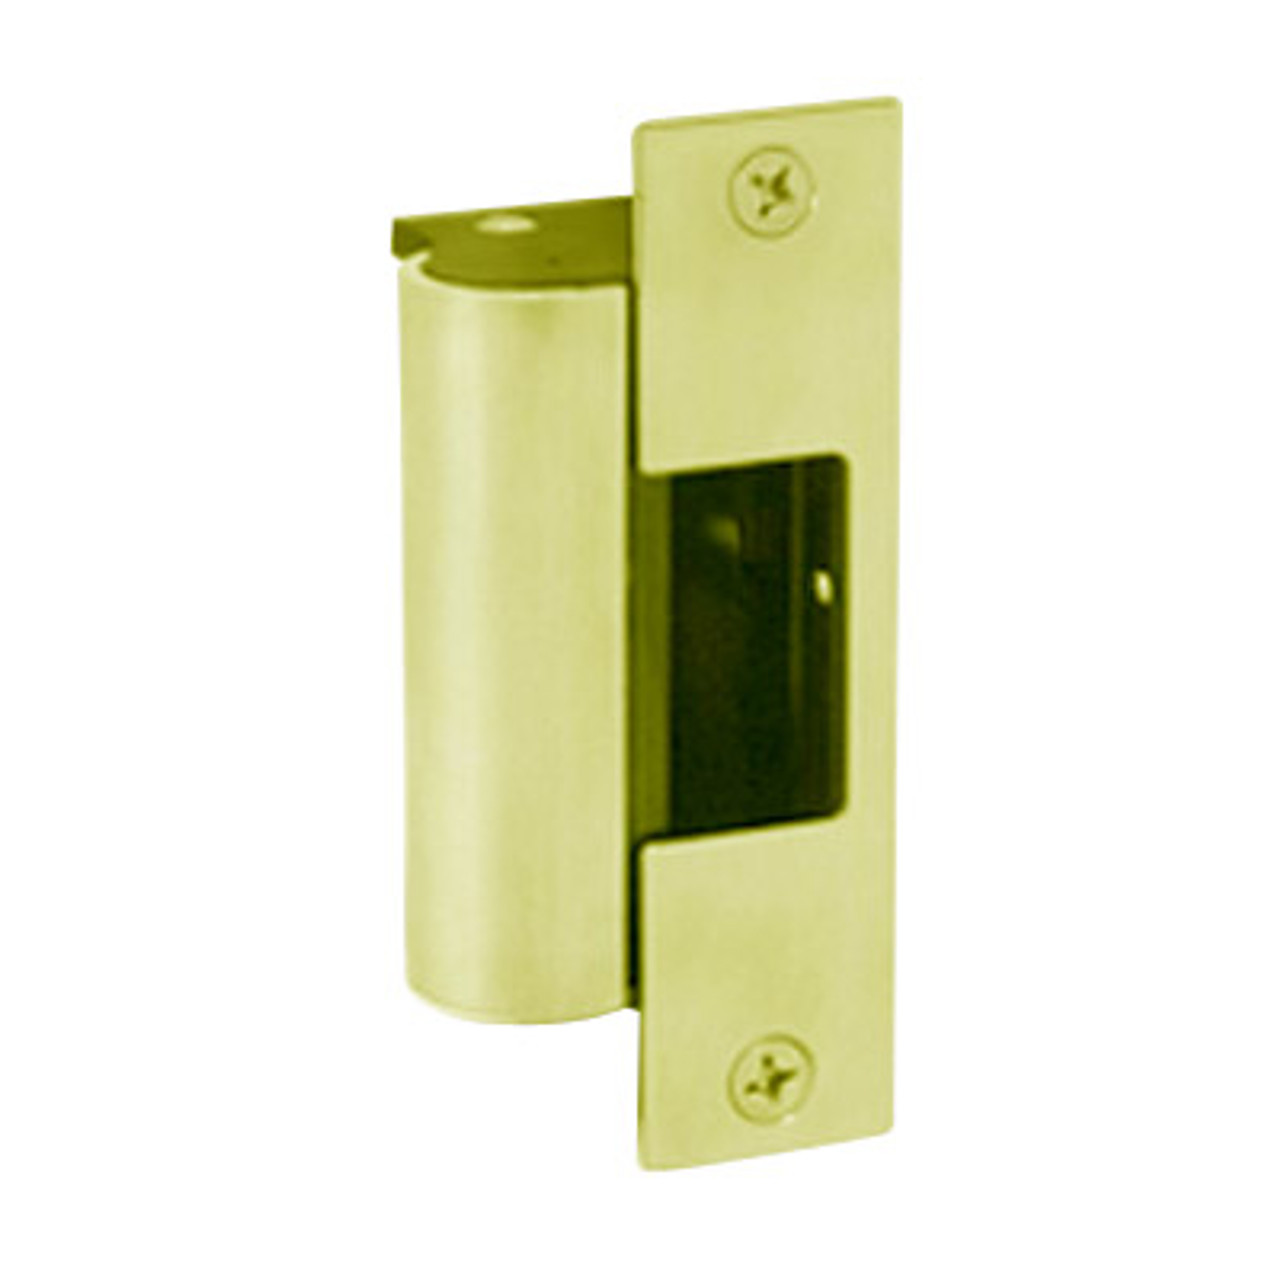 1006-F-605-LBSM Hes Fail Safe Electric Strike Body with Latchbolt Strike Monitor in Bright Brass Finish